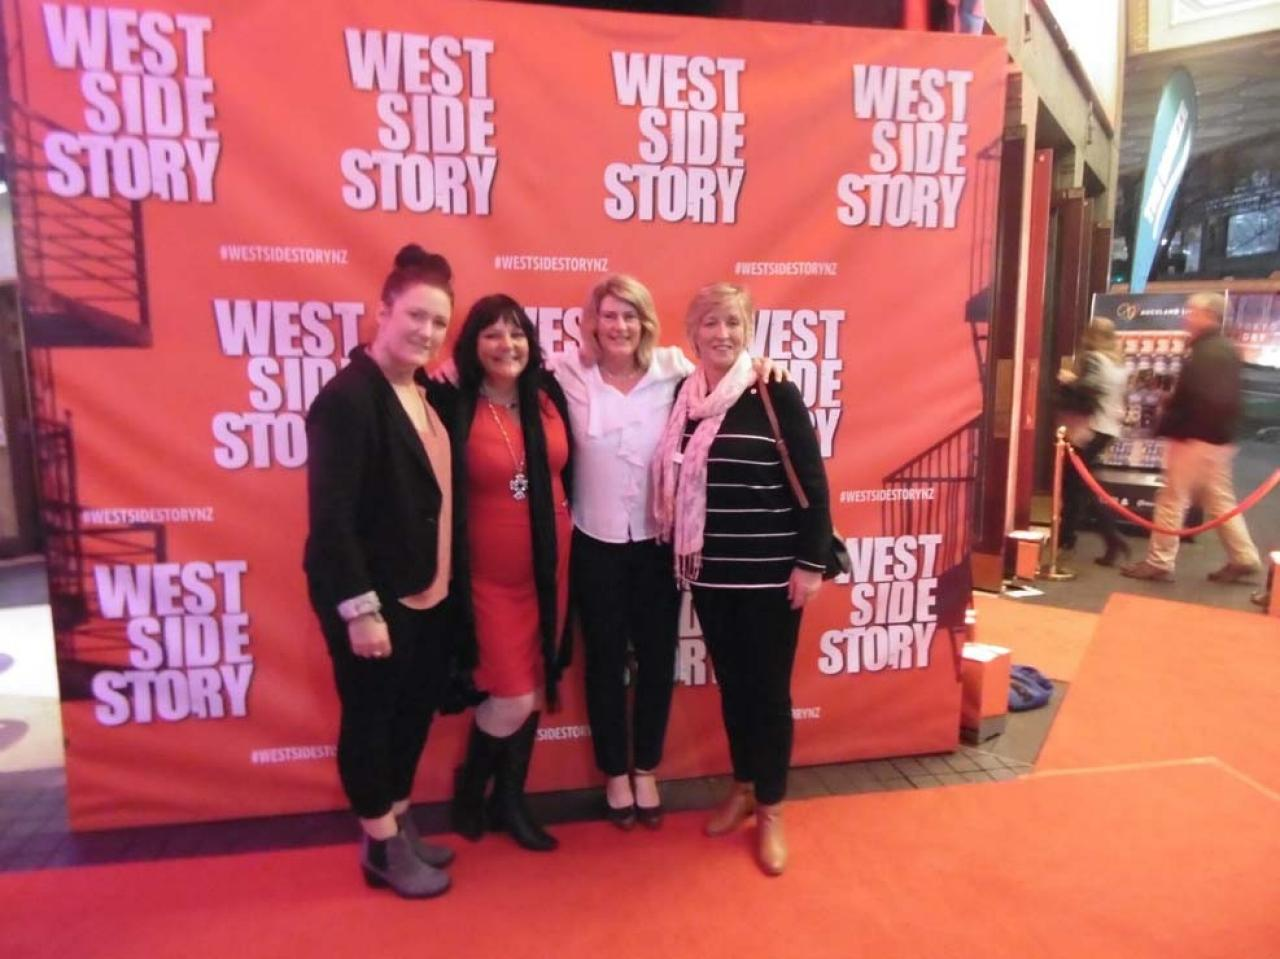 west side story premiere